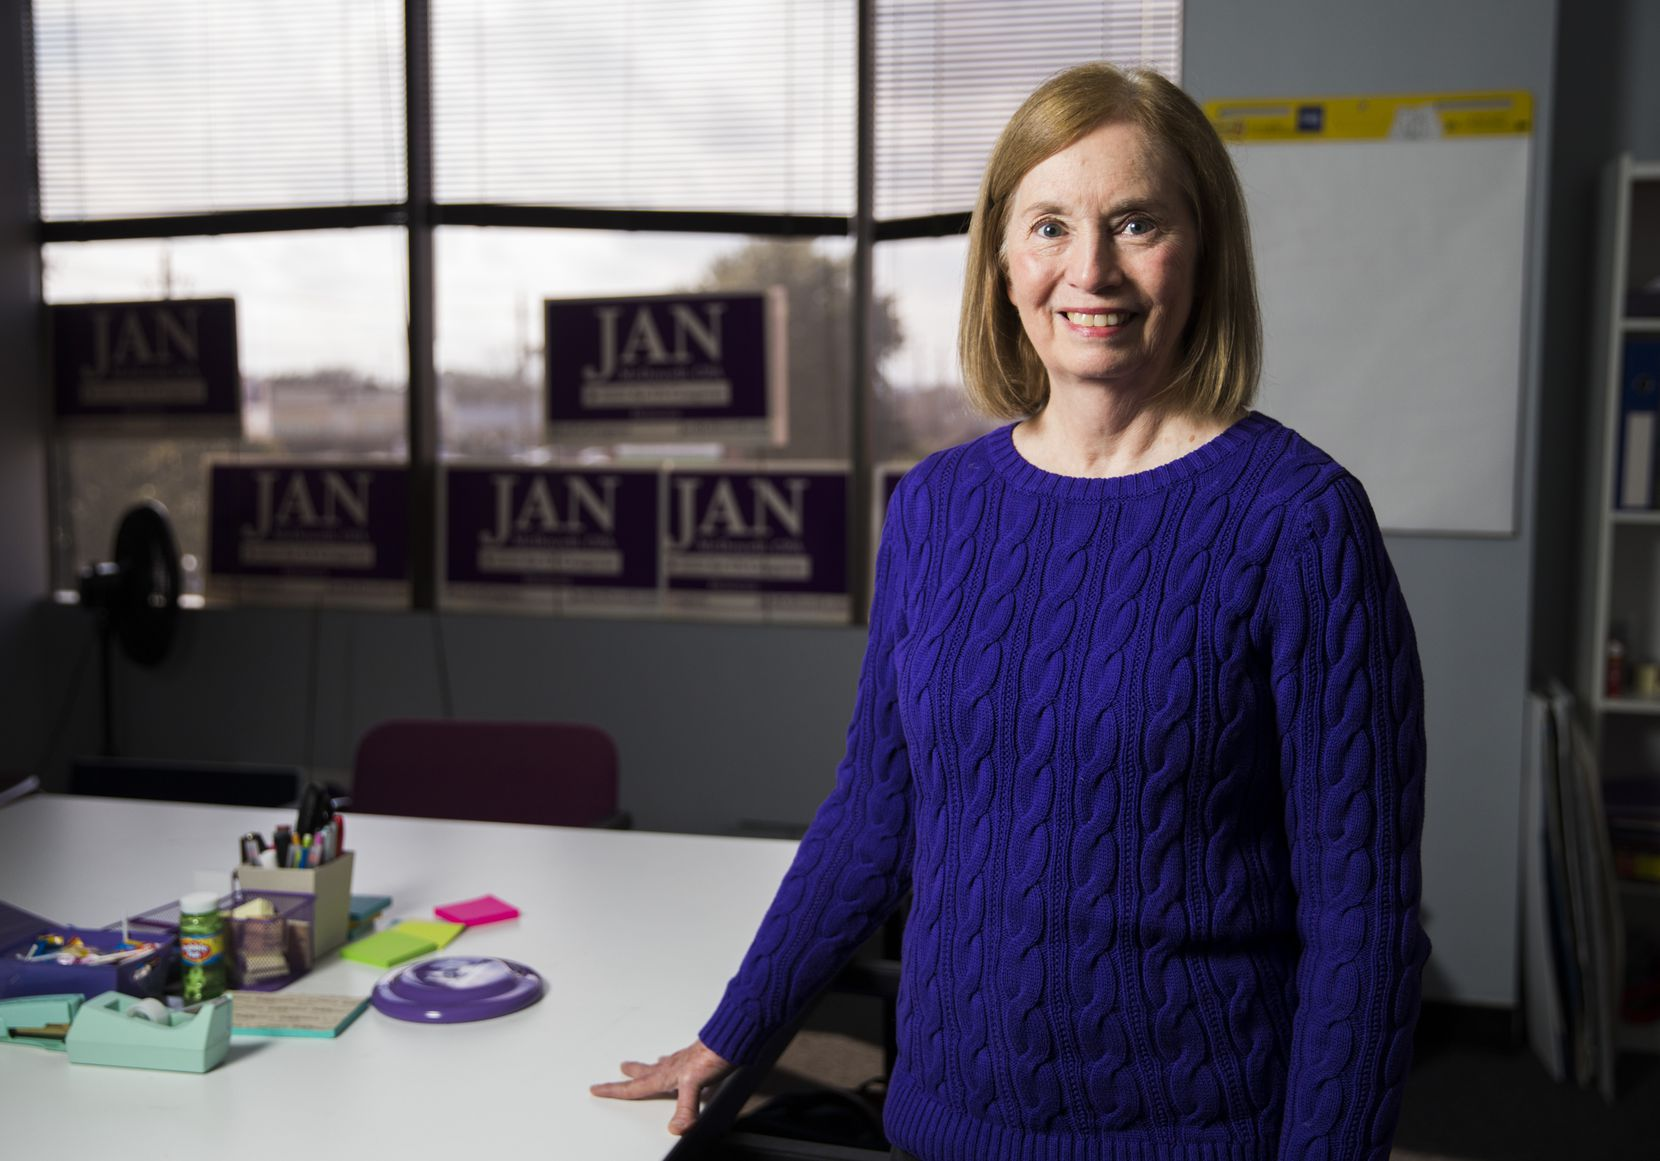 Jan McDowell, a Democratic candidate for the 24th Congressional District, poses for a portrait at her campaign office.